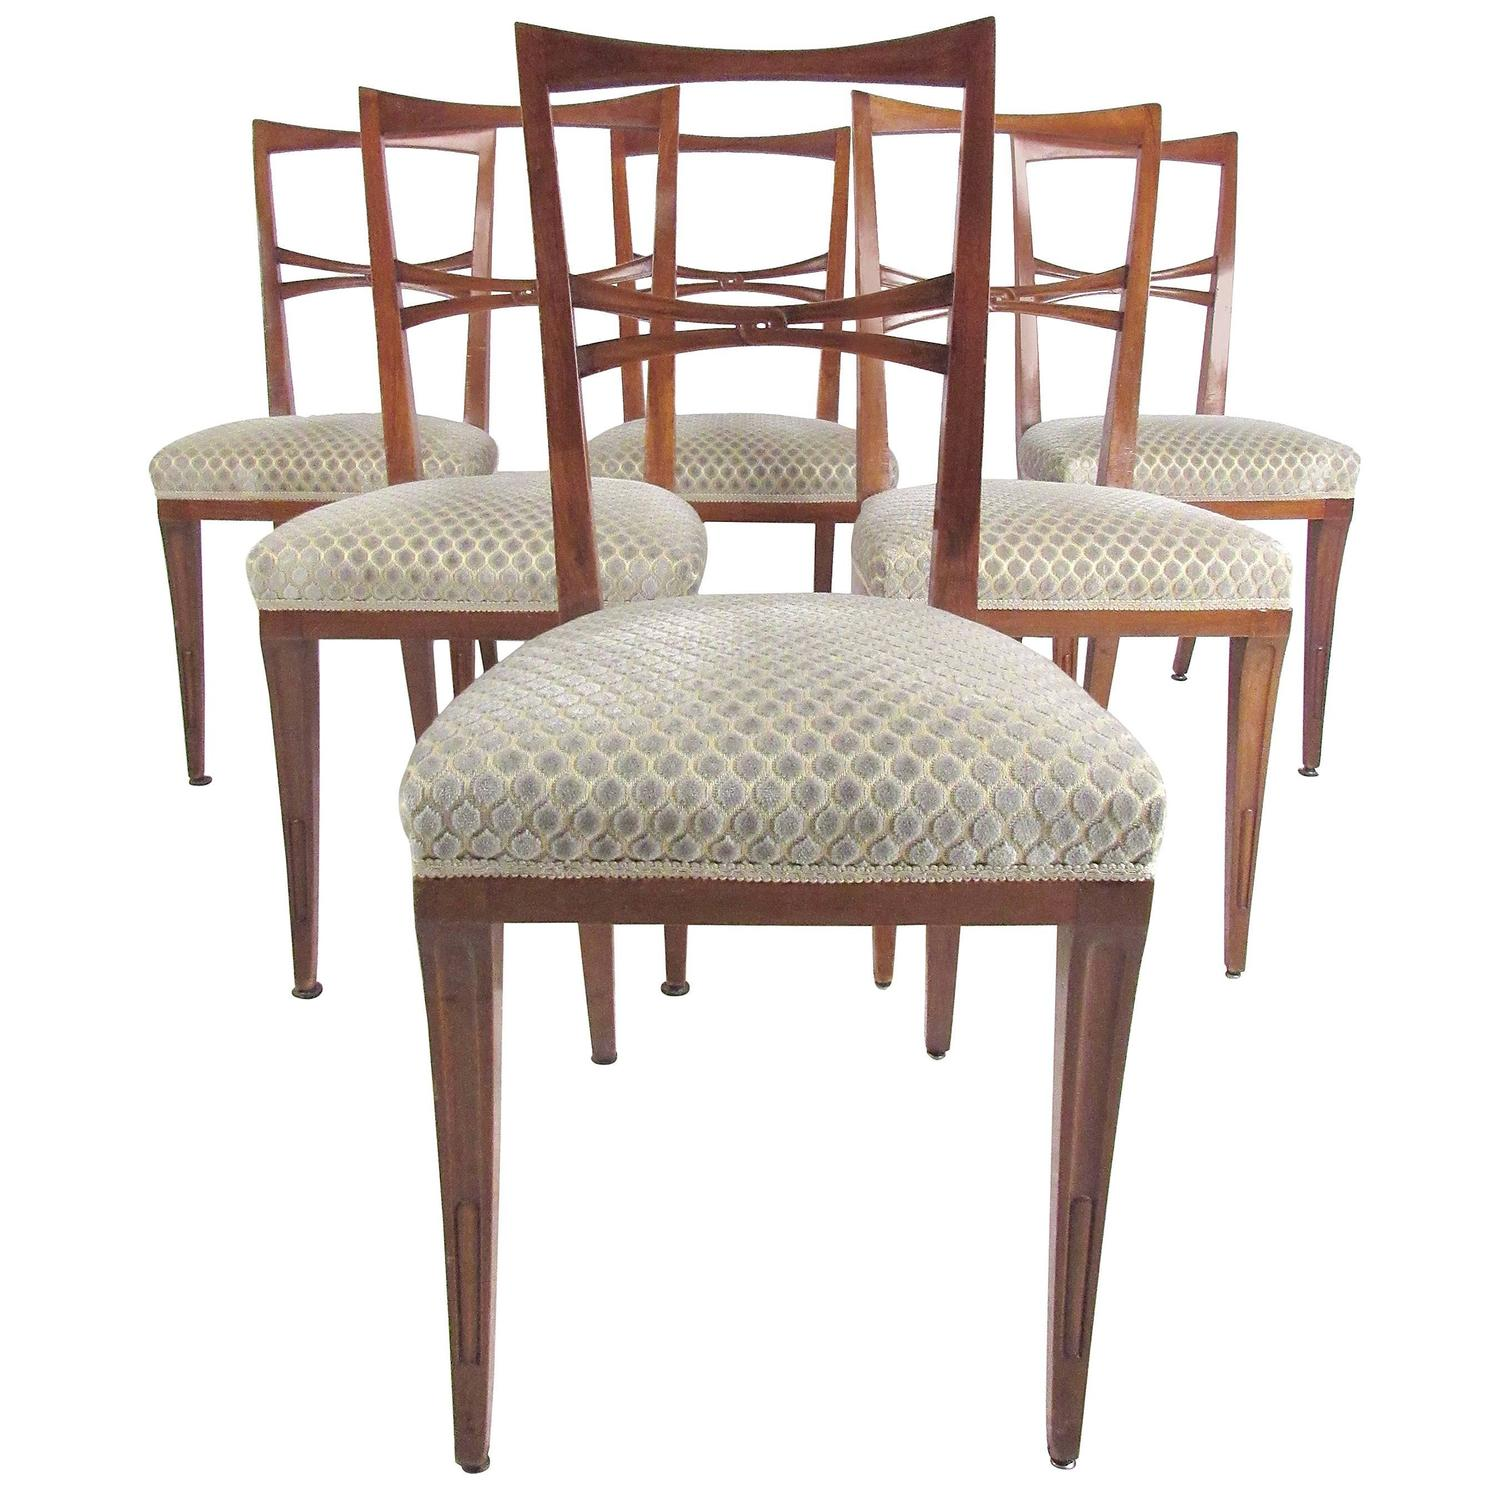 Italian Dining Chairs Set Of Mid Century Modern Italian Dining Chairs In The